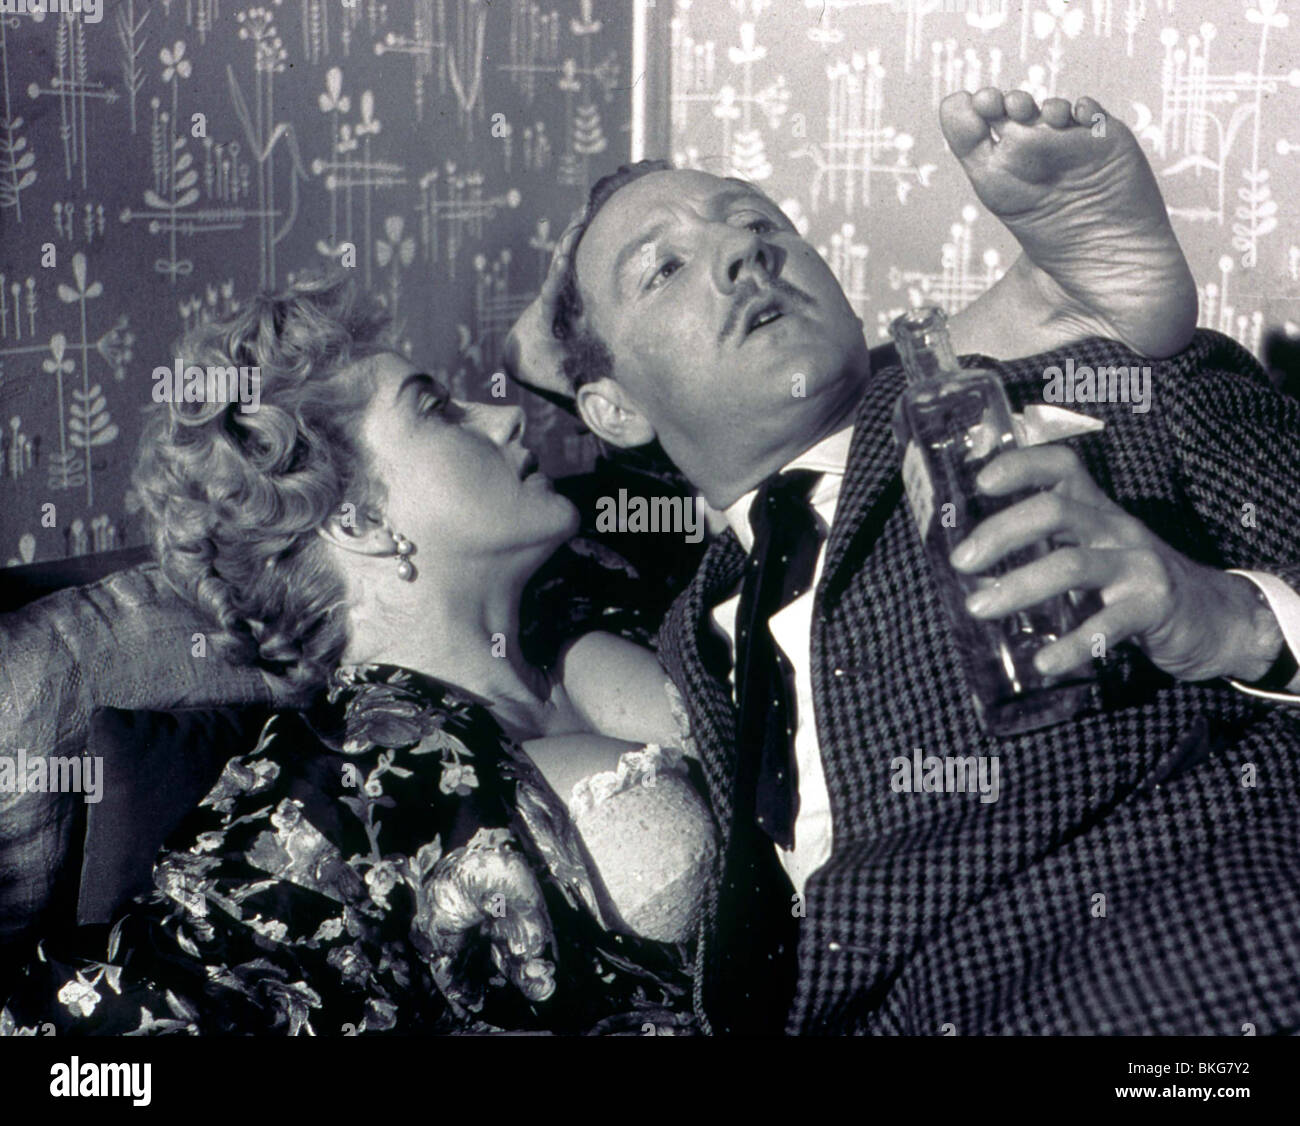 DOCTOR IN LOVE (1960) LIZ FRASER, LESLIE PHILLIPS DIL 035 - Stock Image